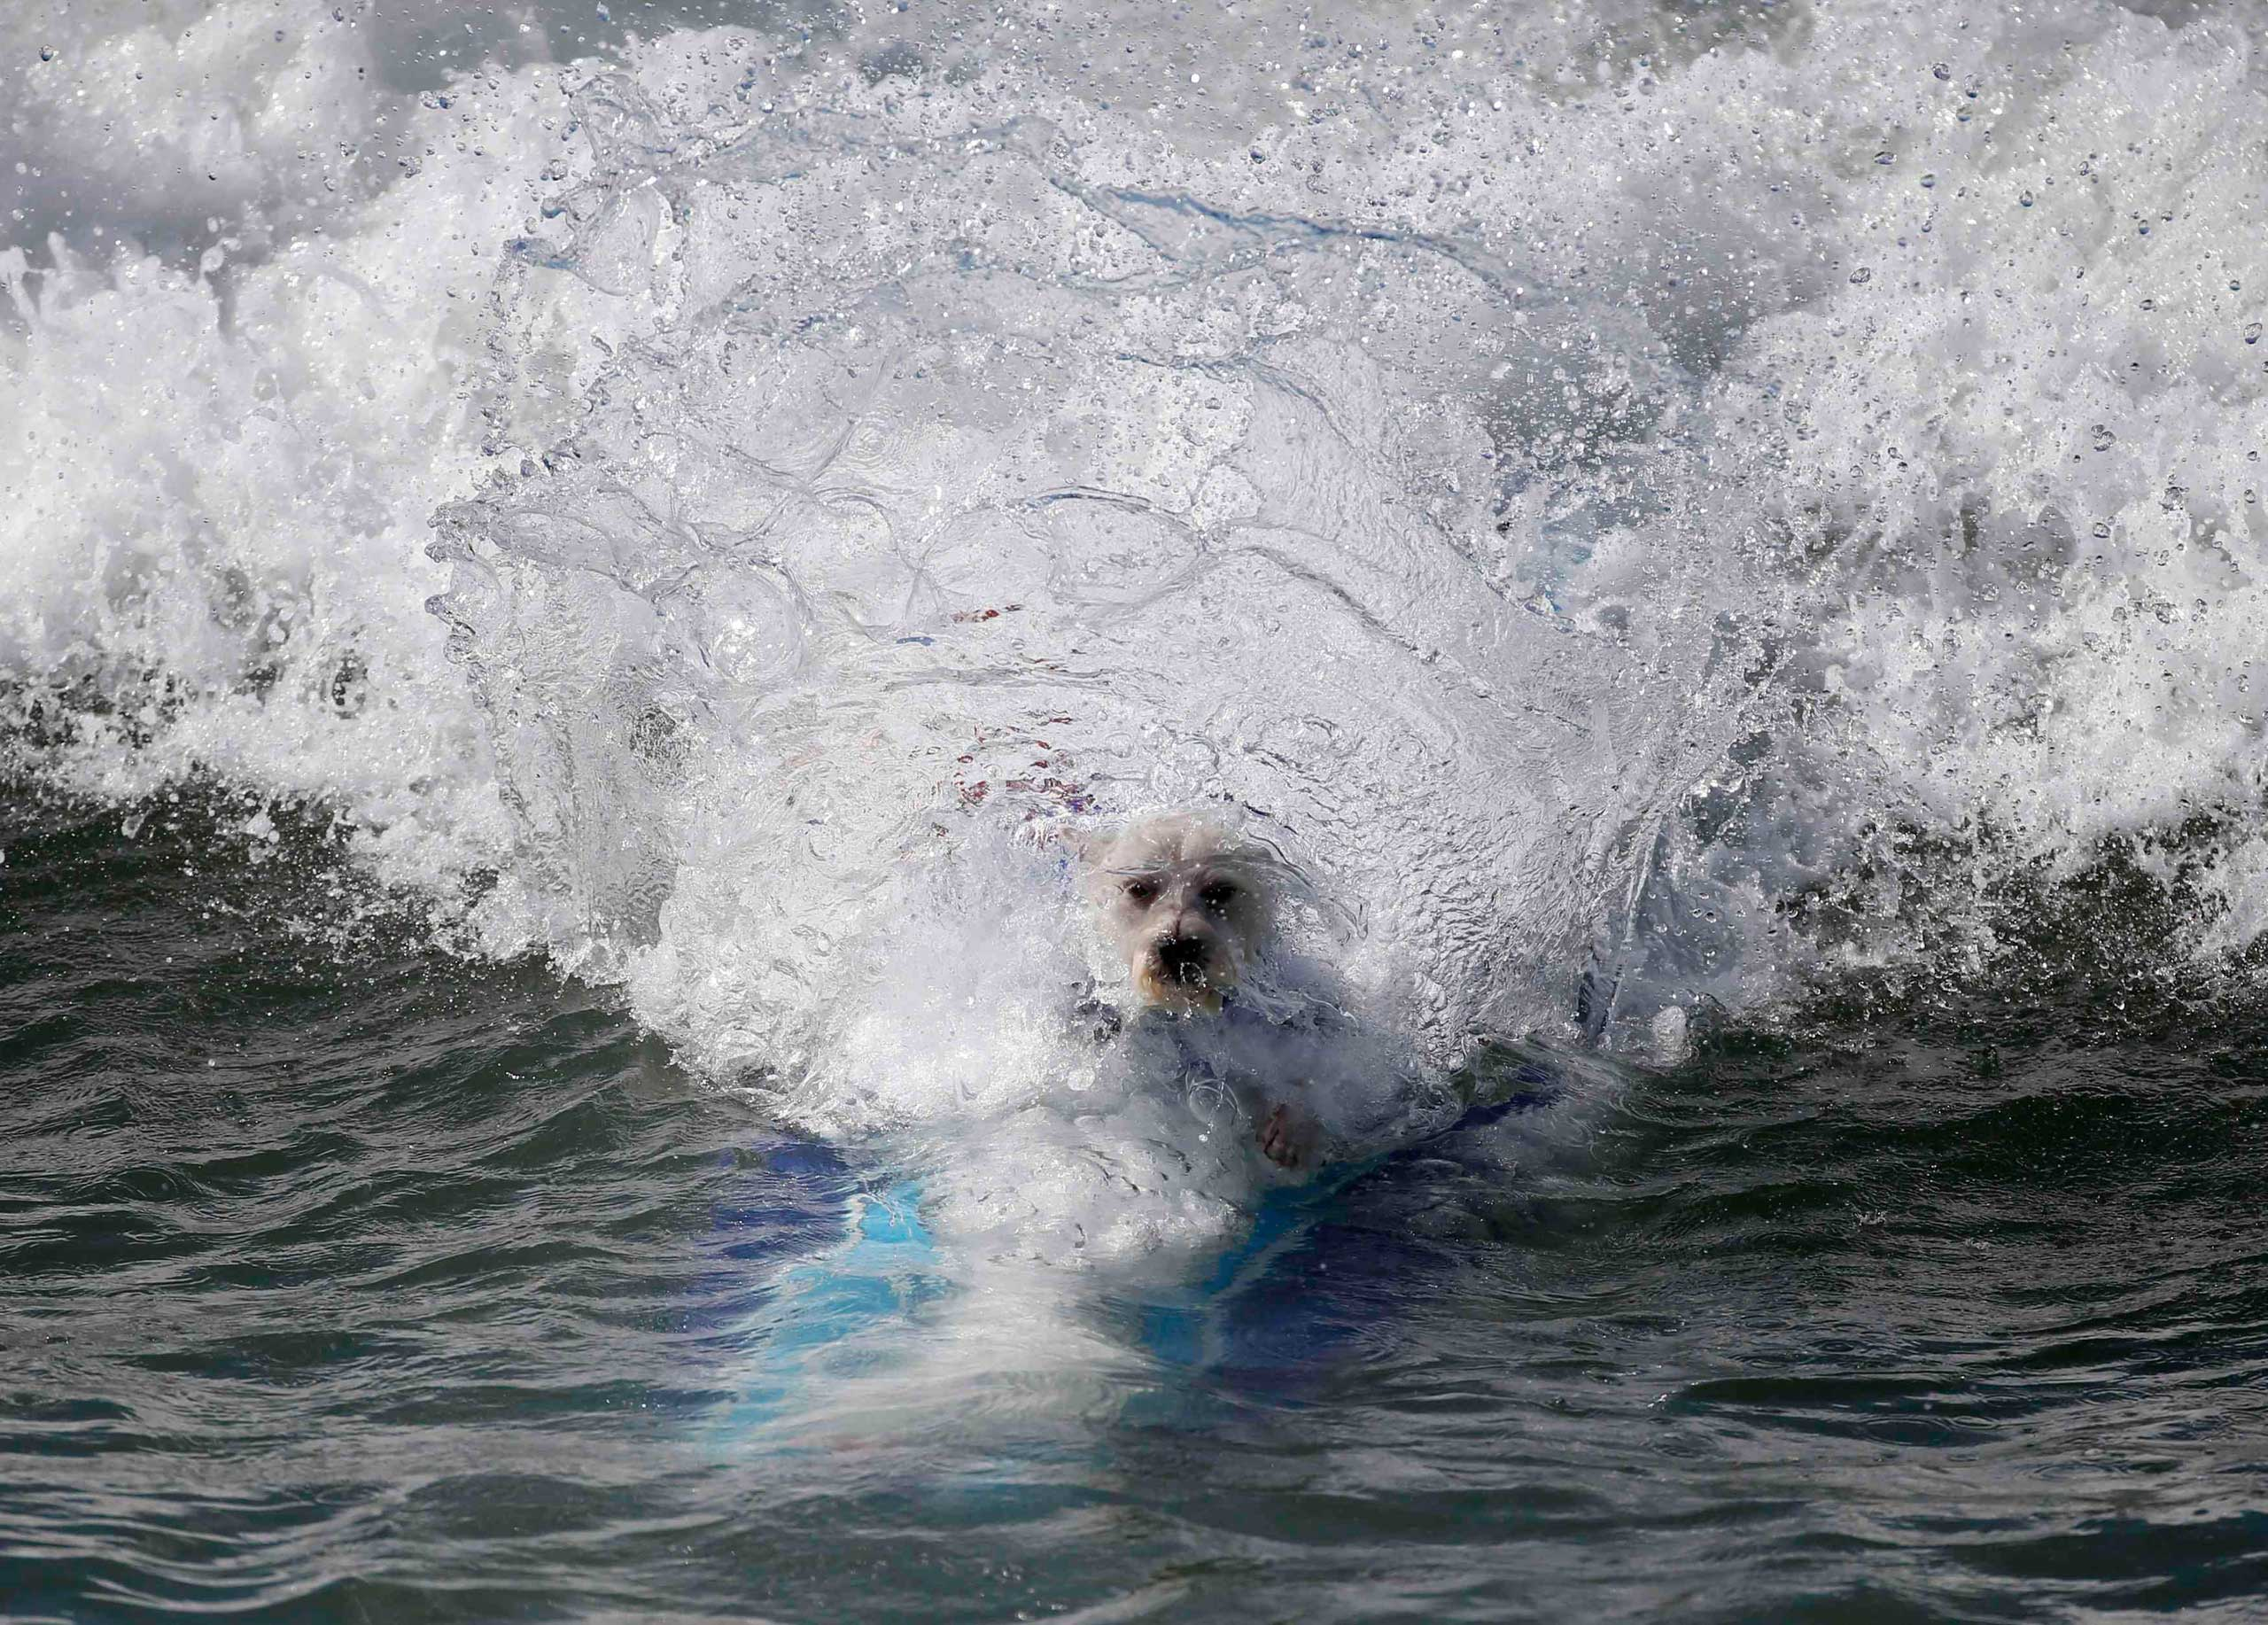 Sept. 28, 2014. A dog wipes out at the 6th Annual Surf City surf dog contest in Huntington Beach, California.